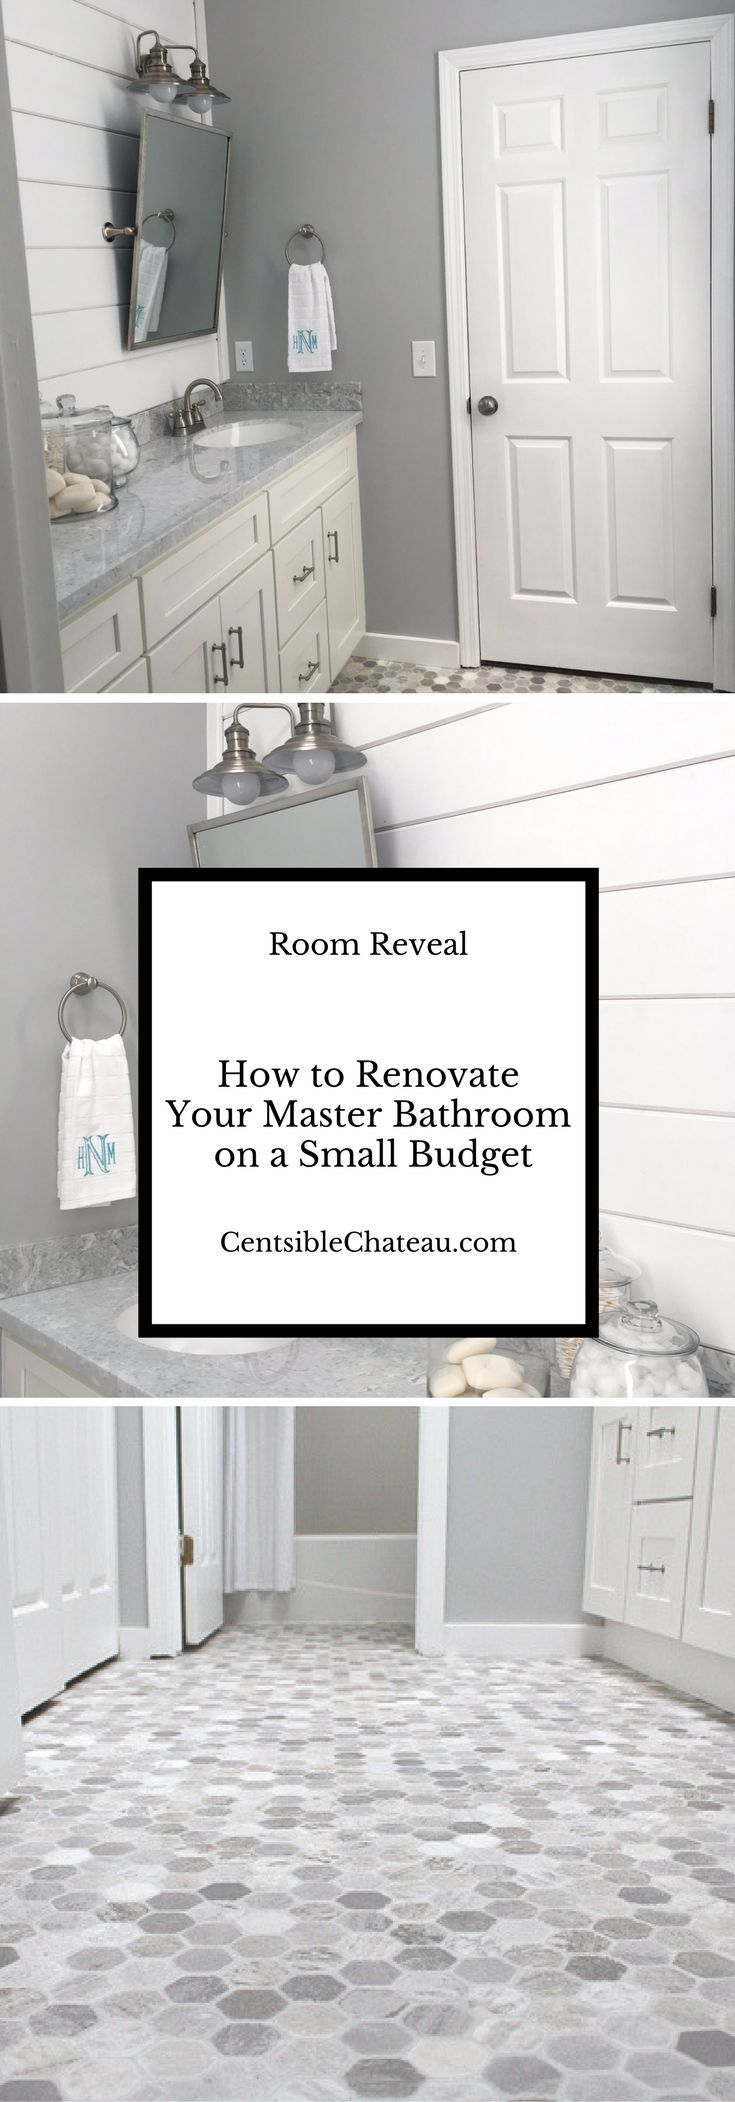 This master bath remodel will show you how you can have an upscale bathroom design a small Budget. Master Bathroom Ideas|Farmhouse Bathroom|Master Bathroom Remodel